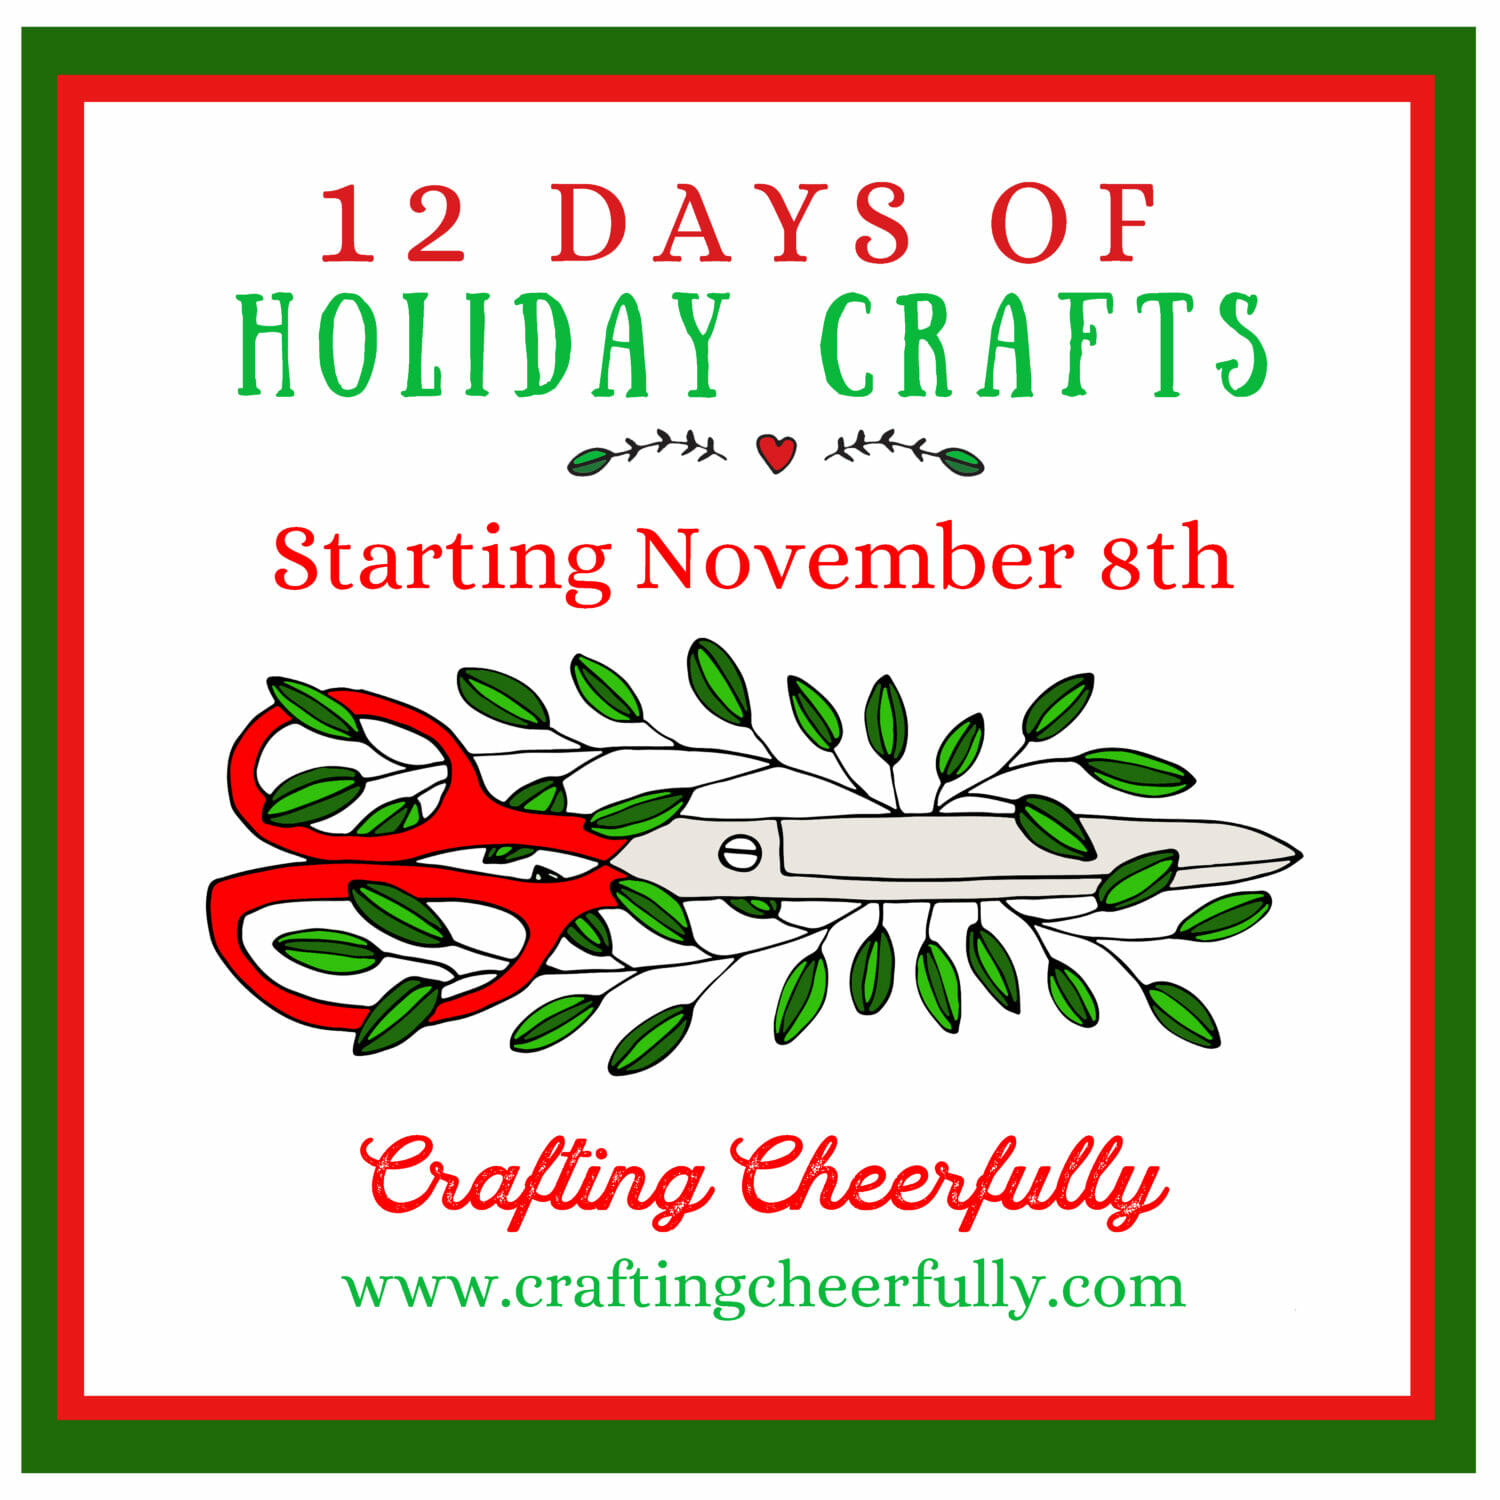 12 Days of Holiday Crafts